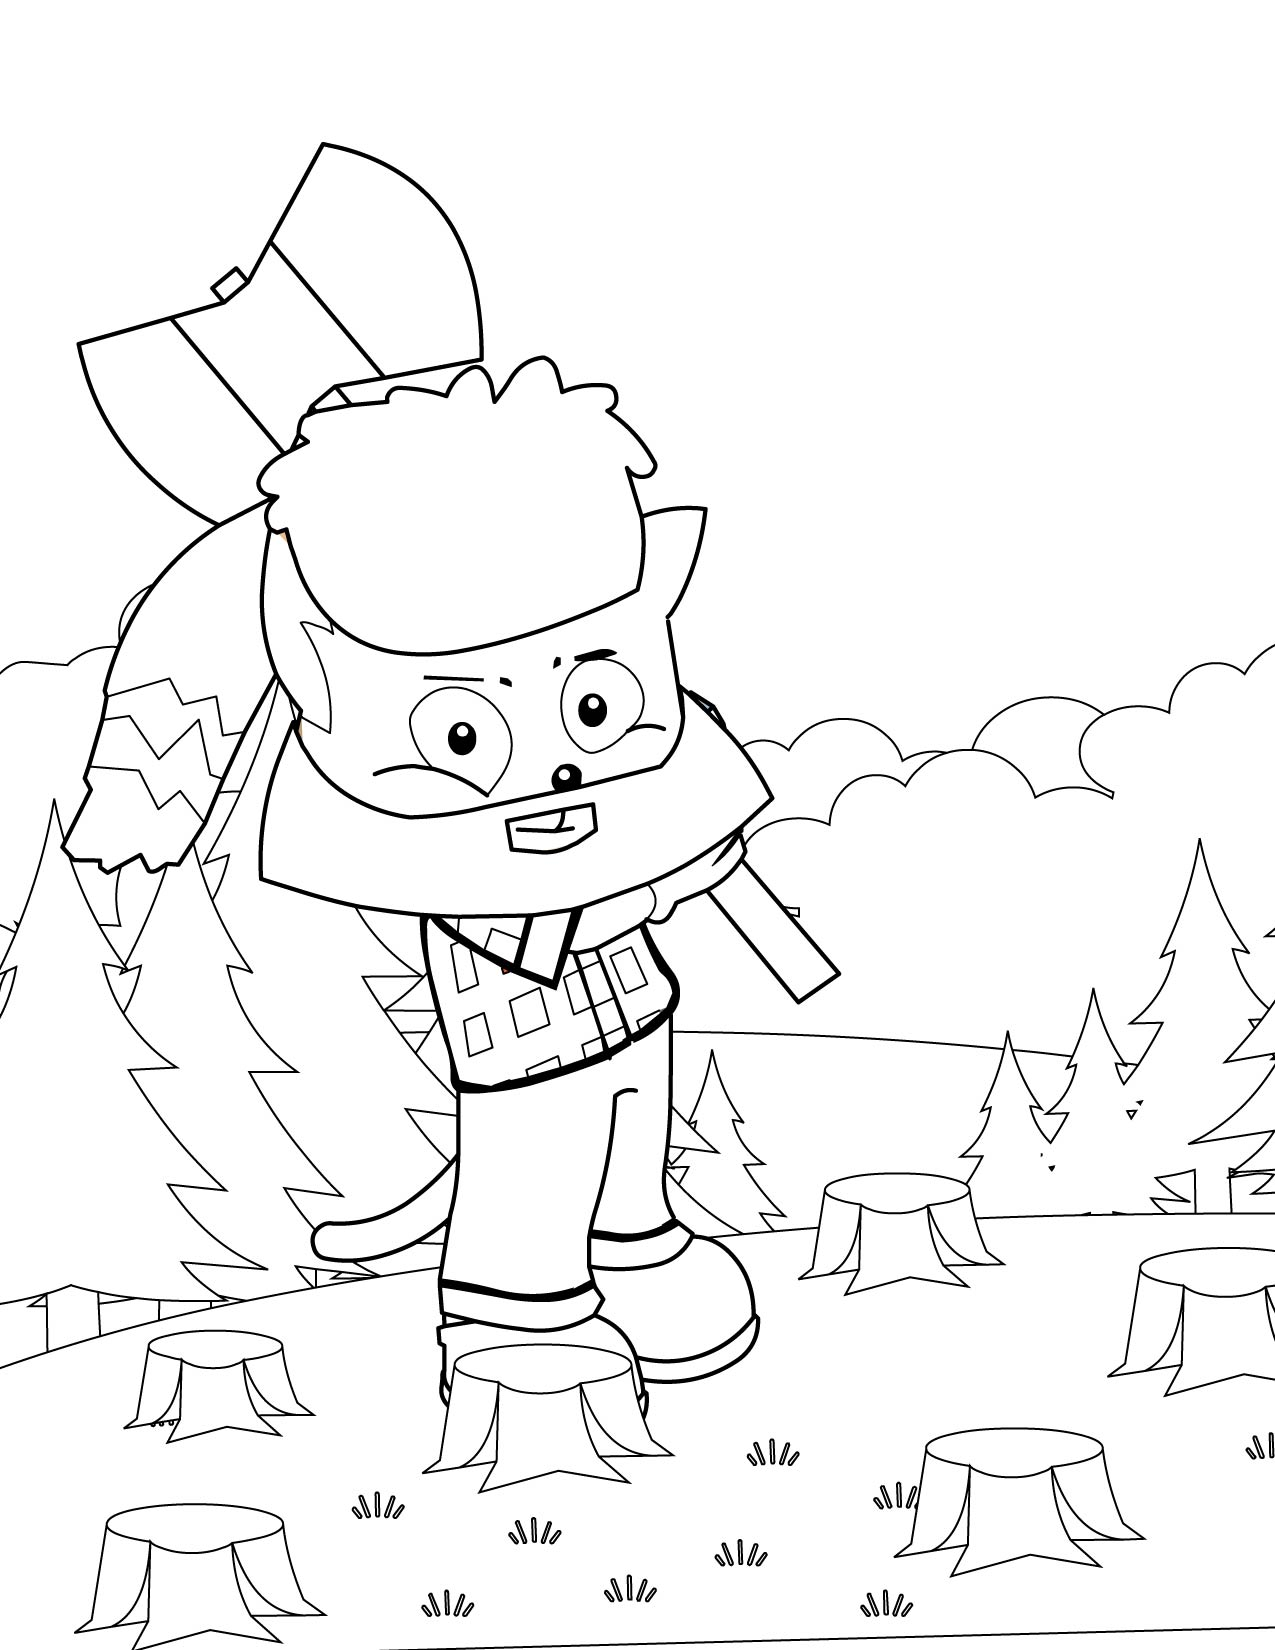 Uncategorized Paul Bunyan Coloring Page paul bunyan coloring page handipoints bunyan